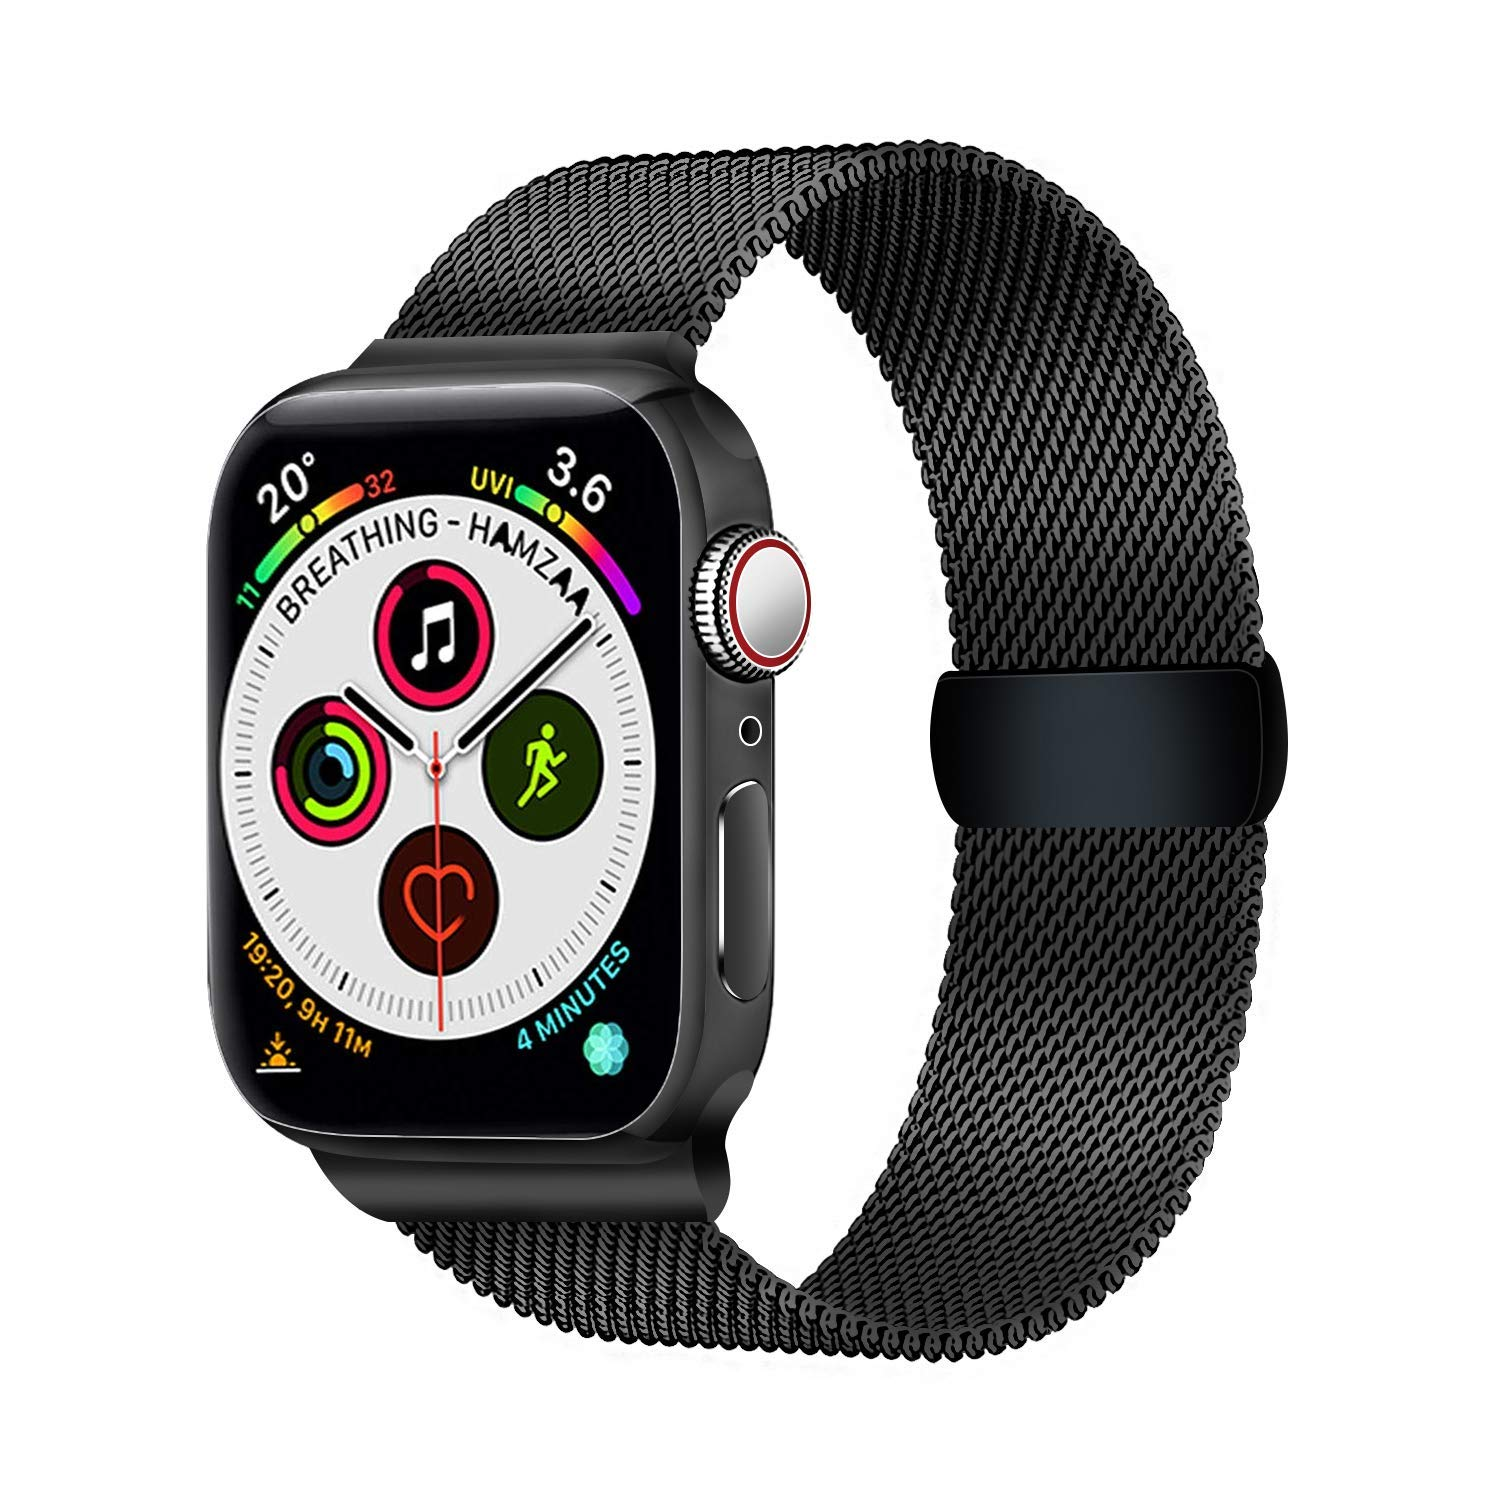 Smartwatch Bands for Apple Watch Band Series 4/3/2/1, Milanese Loop Band Stainless Steel with Adjustable Magnetic Closure Replacement Sport Bands ...